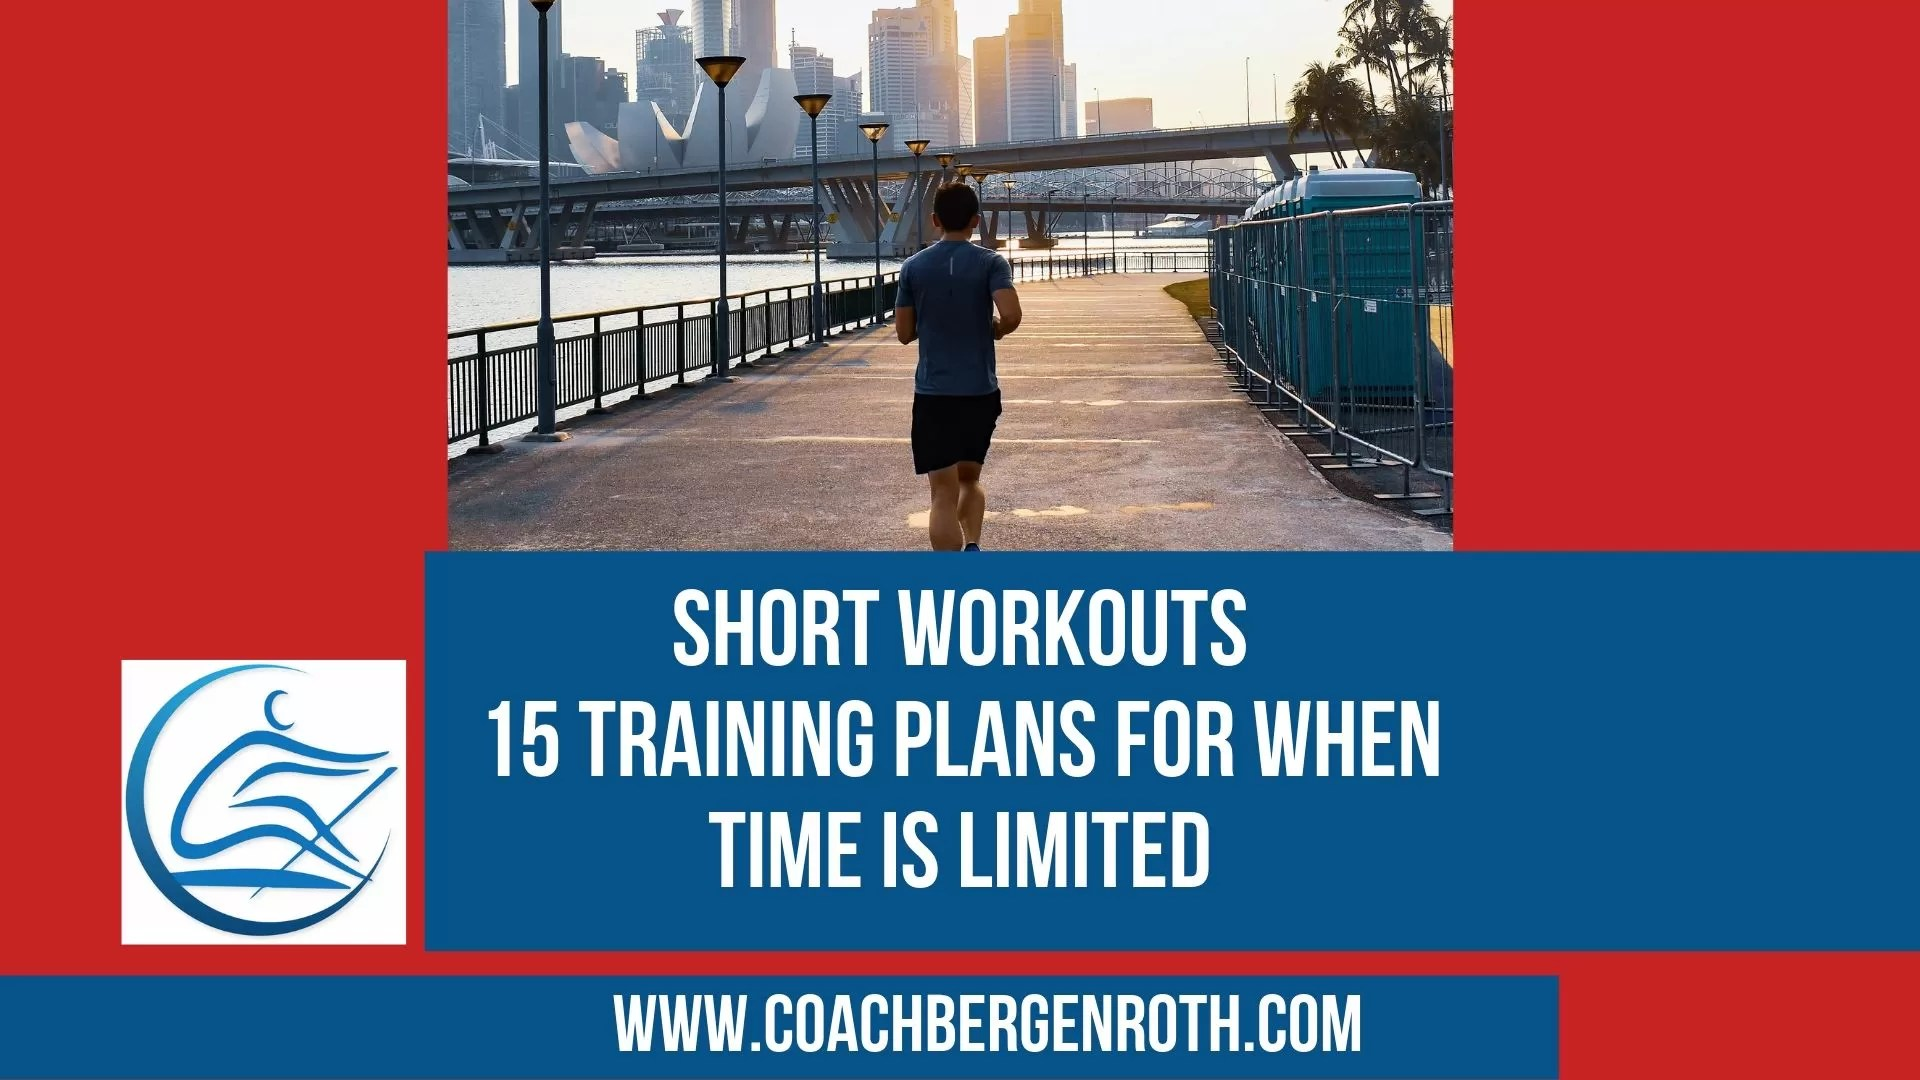 short workouts training plan for when time is limited